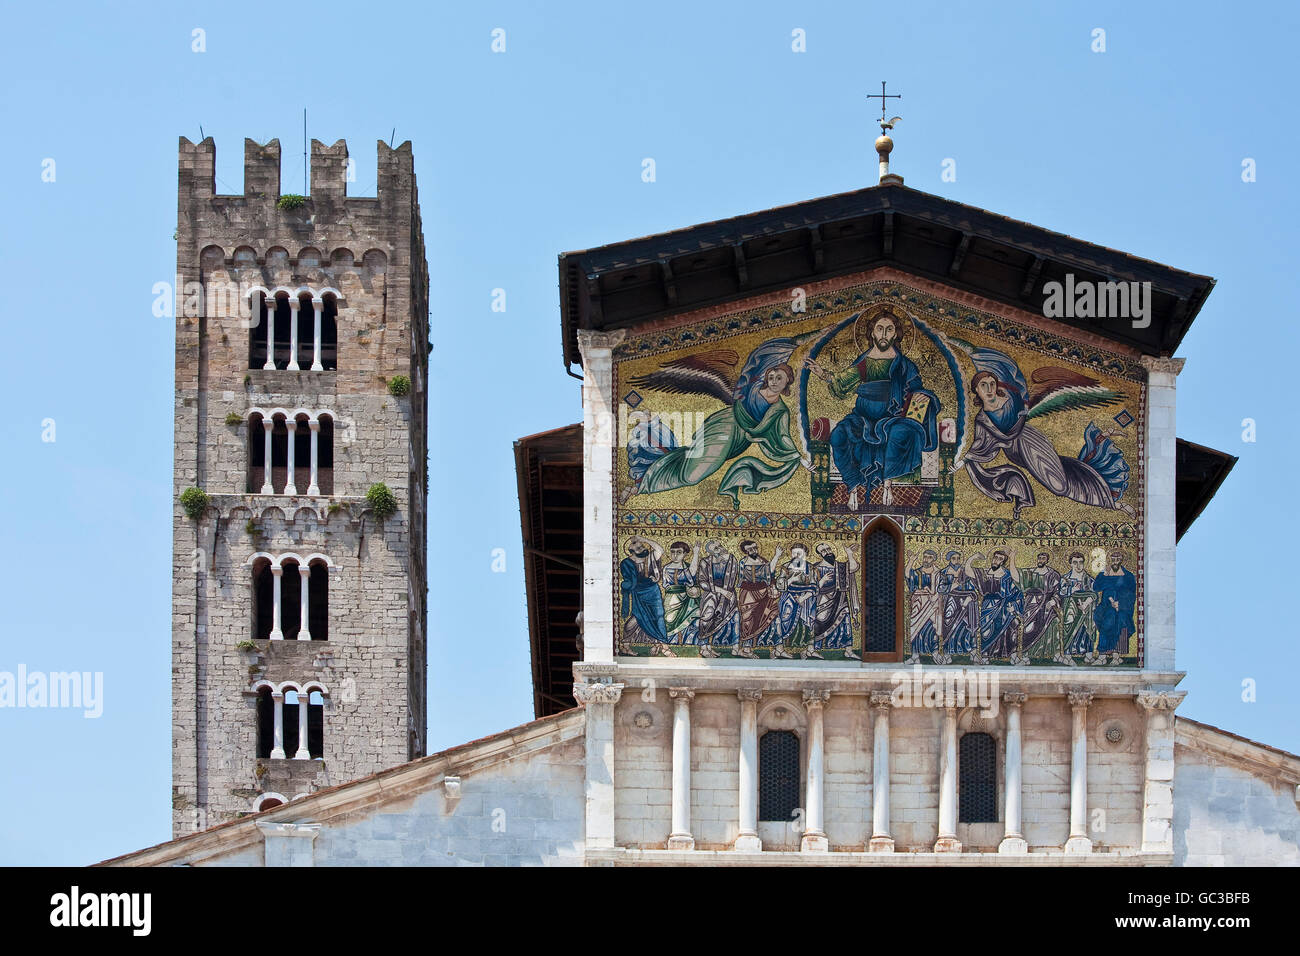 Basilica di San Frediano, church in Lucca, Toskany, Italy, Europe - Stock Image